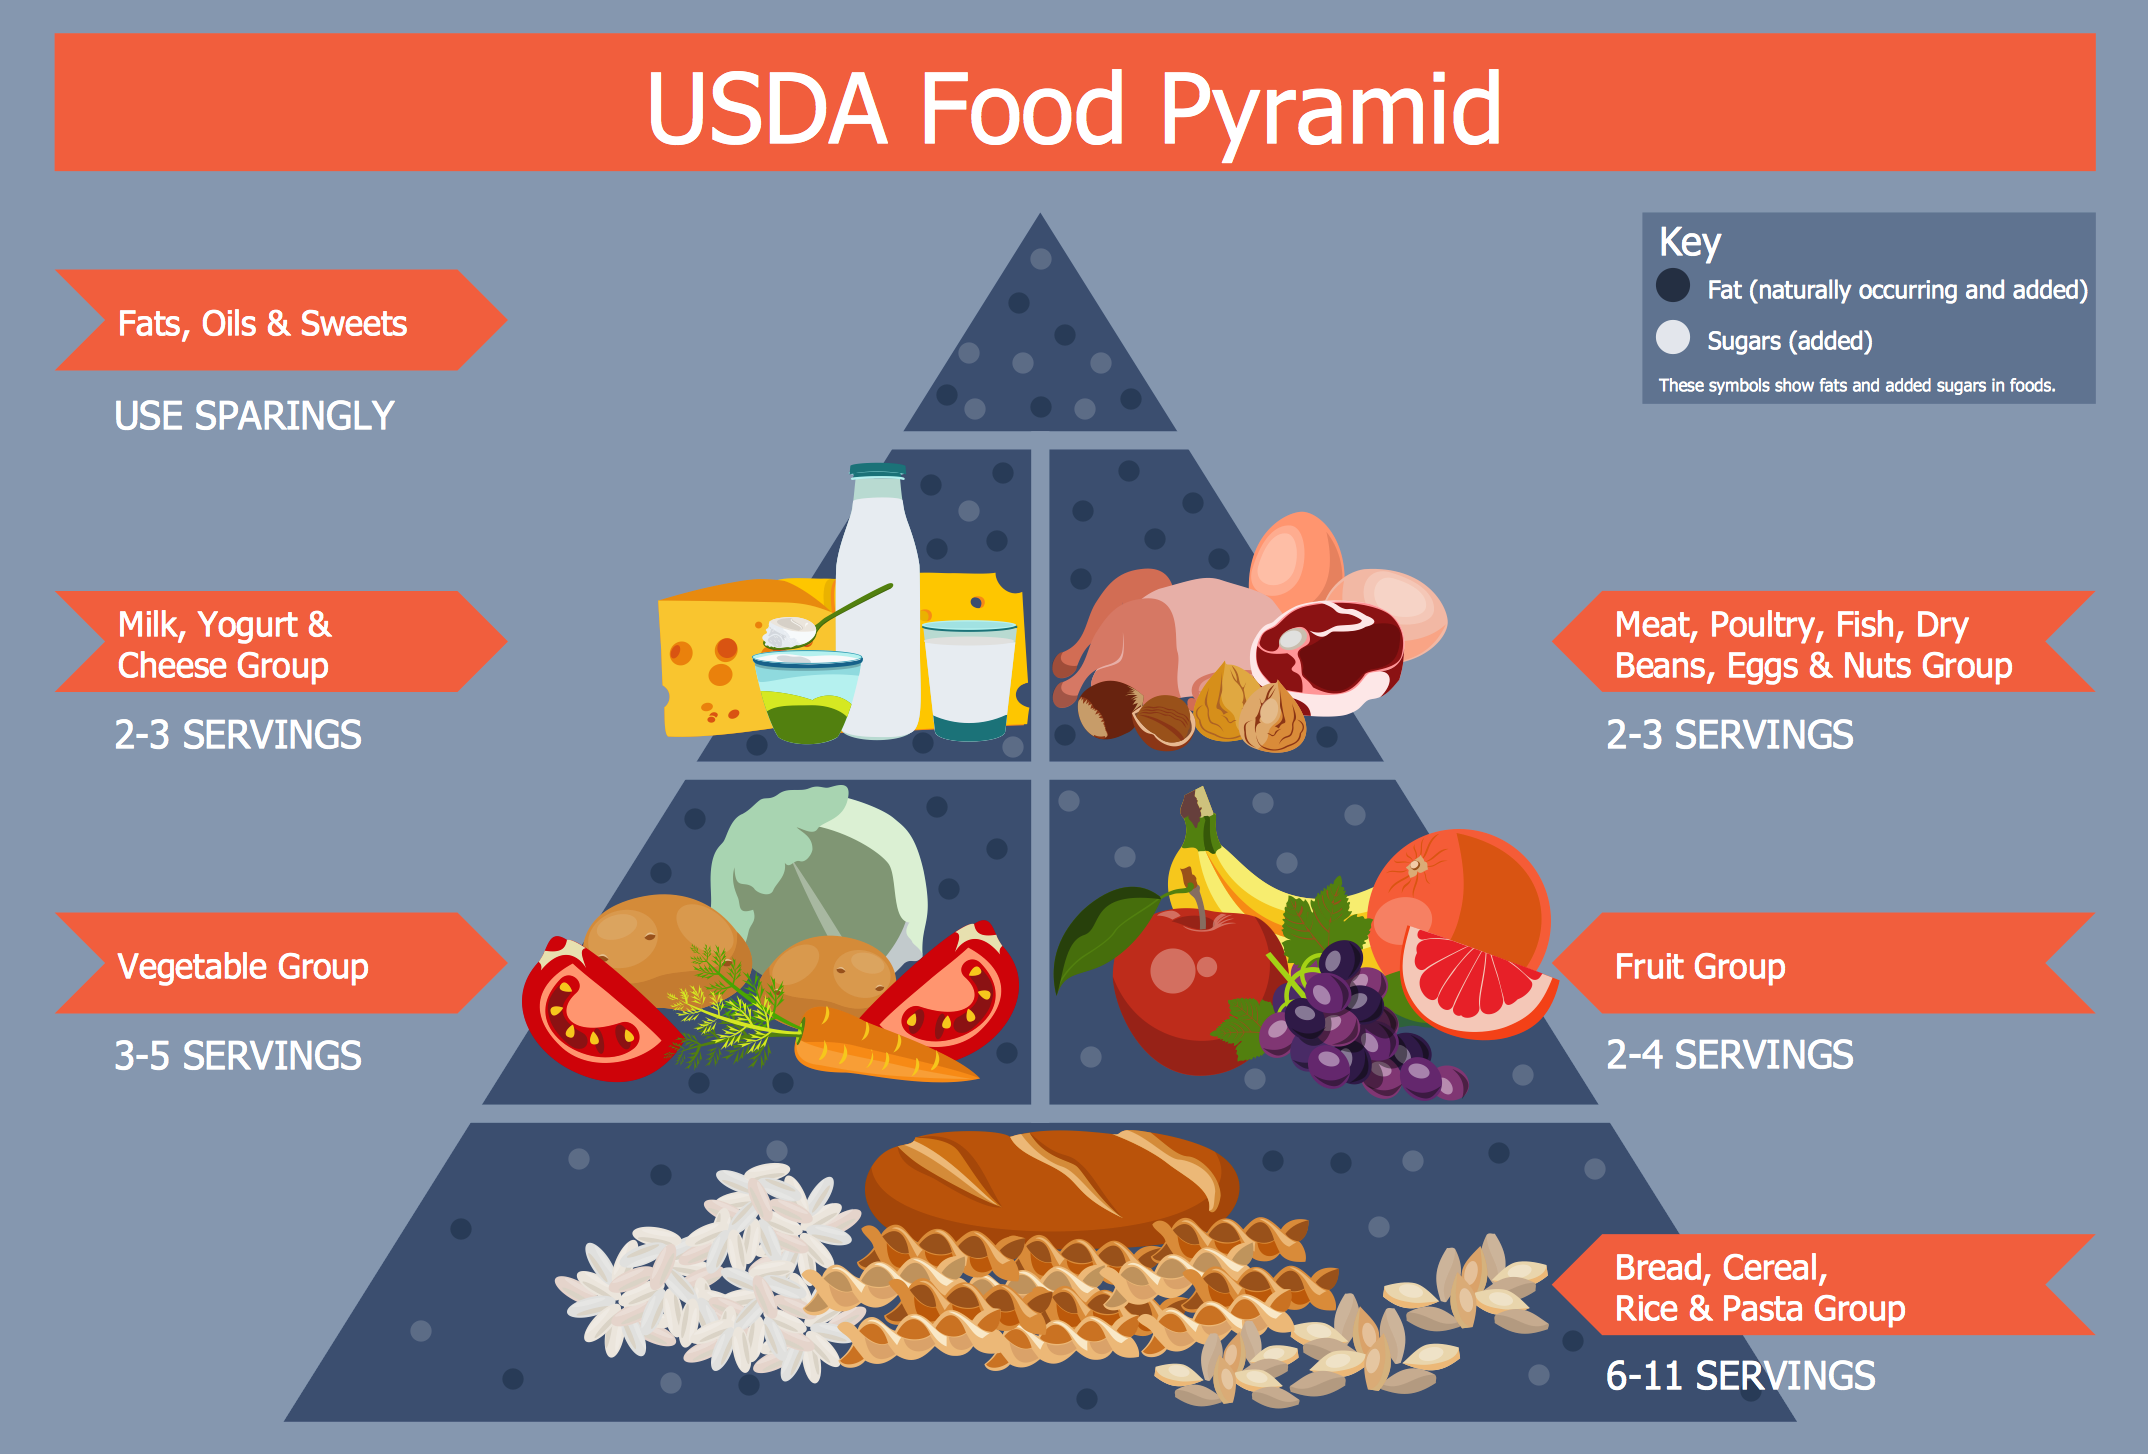 United States Department of Agriculture (USDA) Food